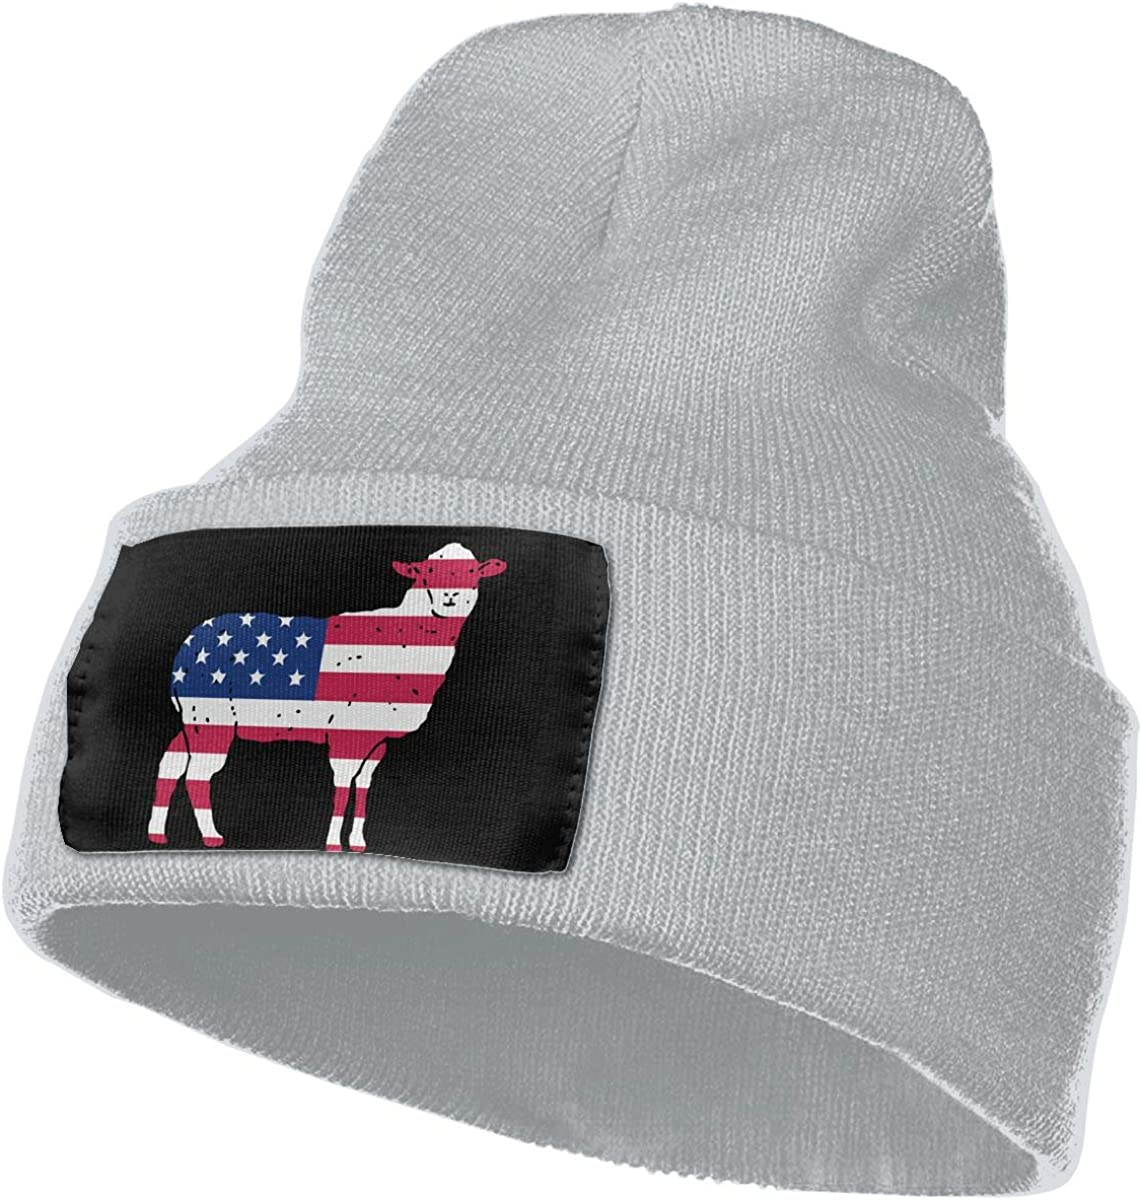 Patriotic Sheep with The US Flag Men Women Knitting Hats Stretchy /& Soft Skull Cap Beanie